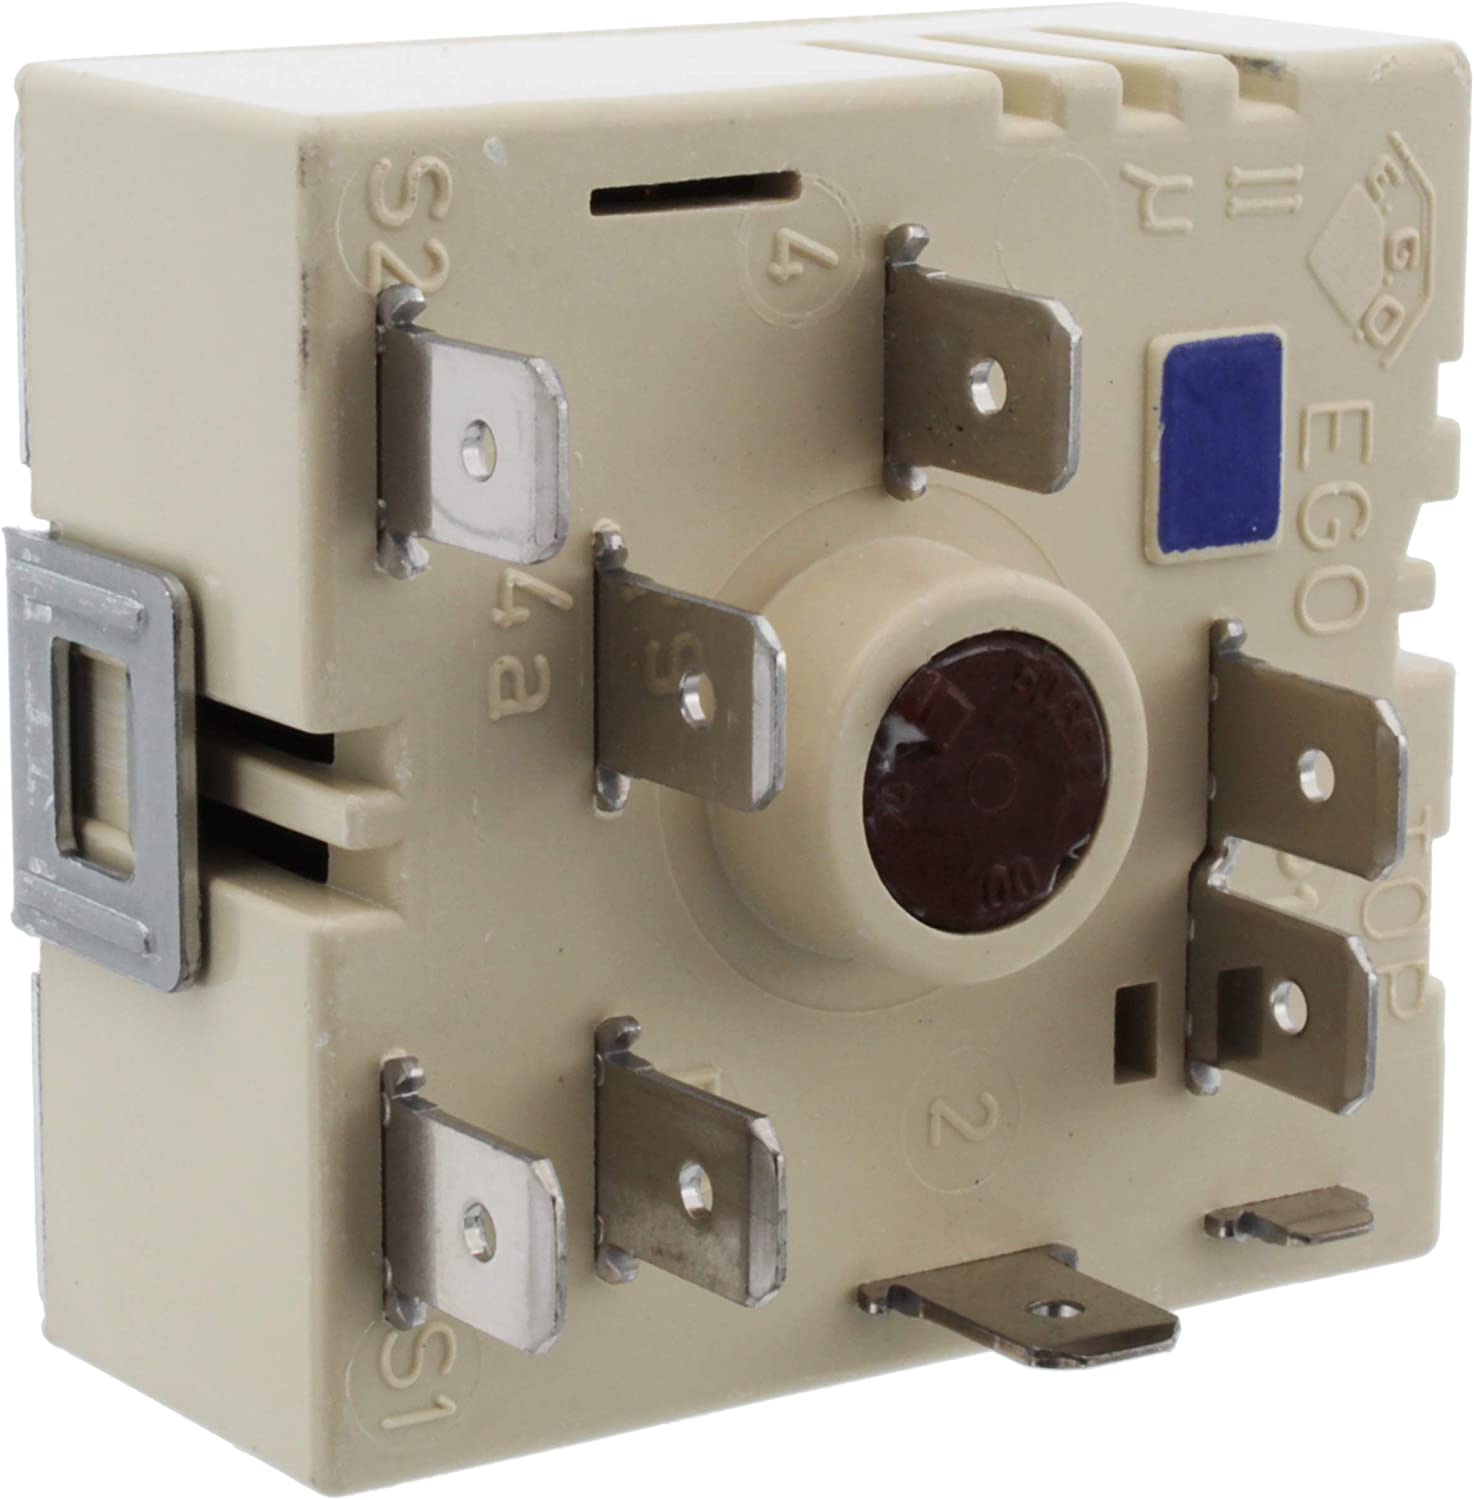 Supplying Demand 74008248 Range Infinite Control Switch Compatible With Whirlpool Fits 7403P831-60, PS11744225